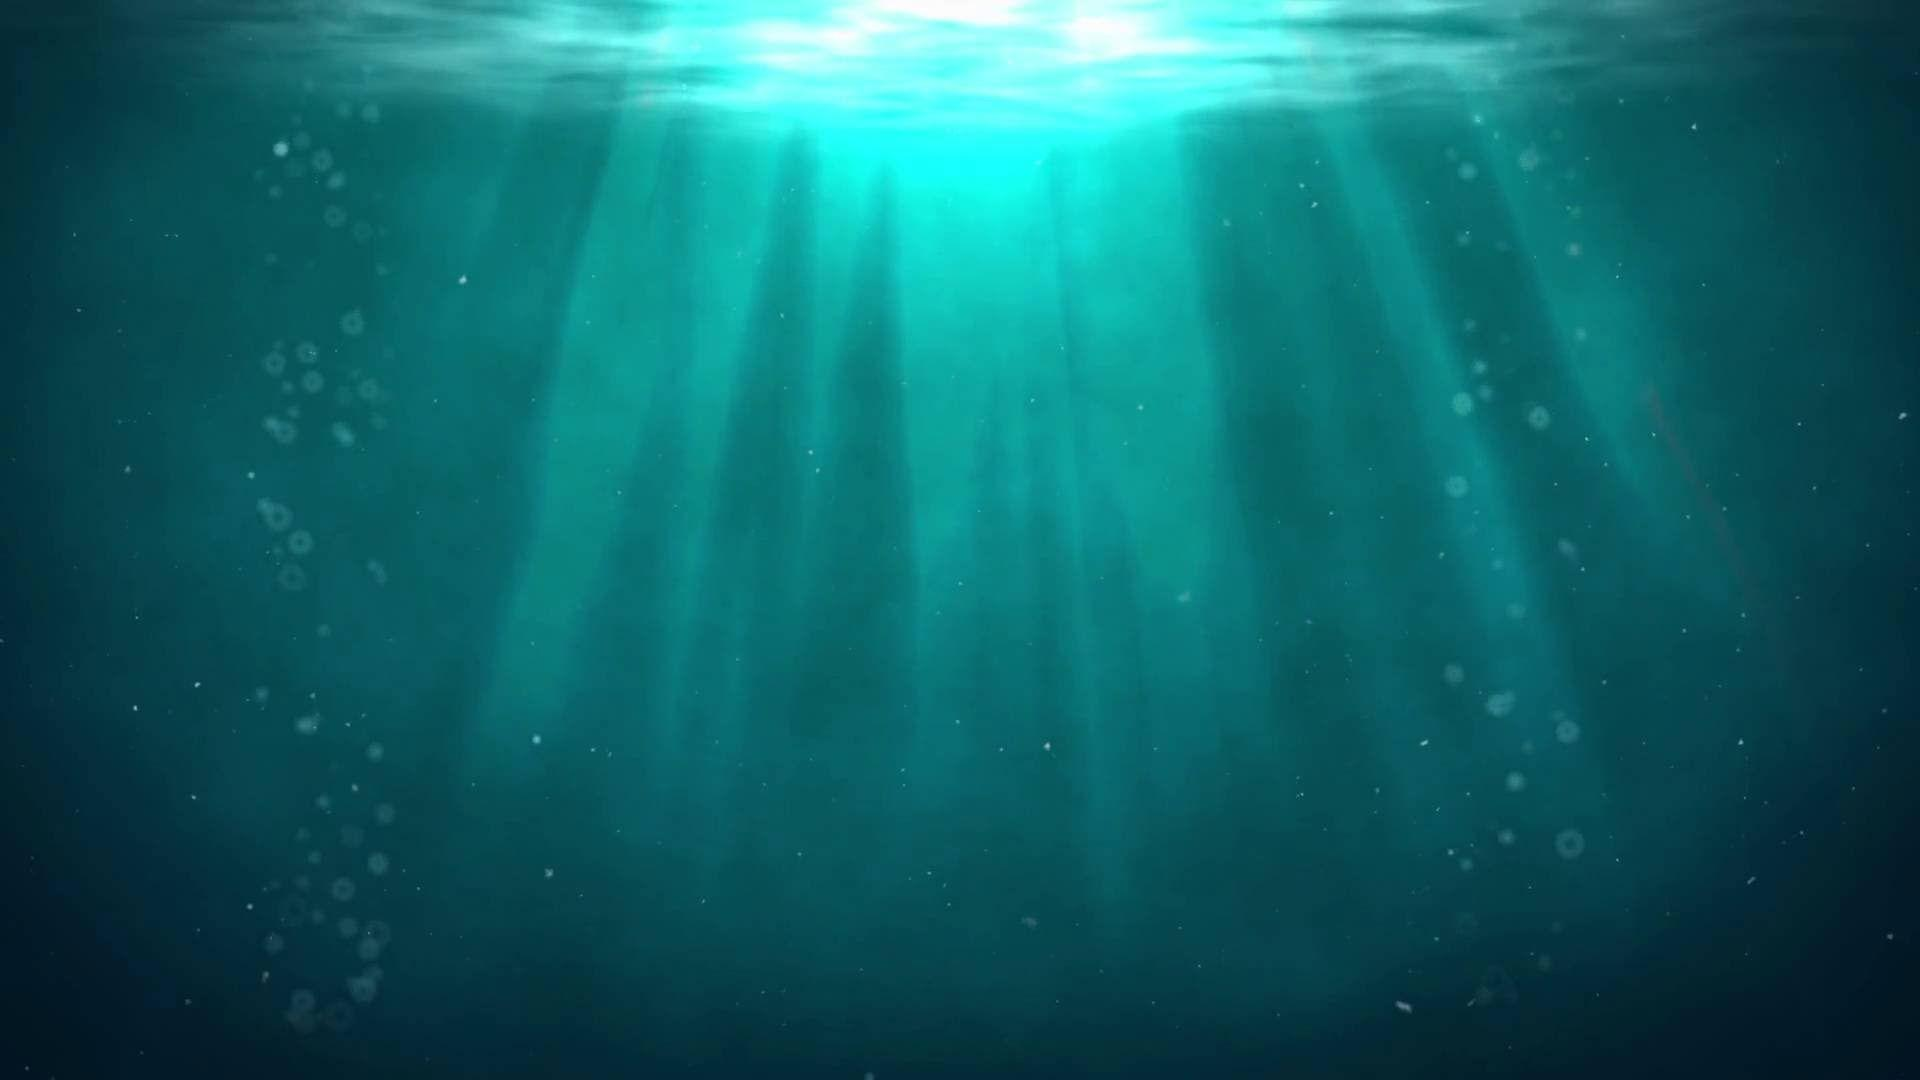 Free Deep Underwater Animated Backgrounds Wallpapers Full HD Loop